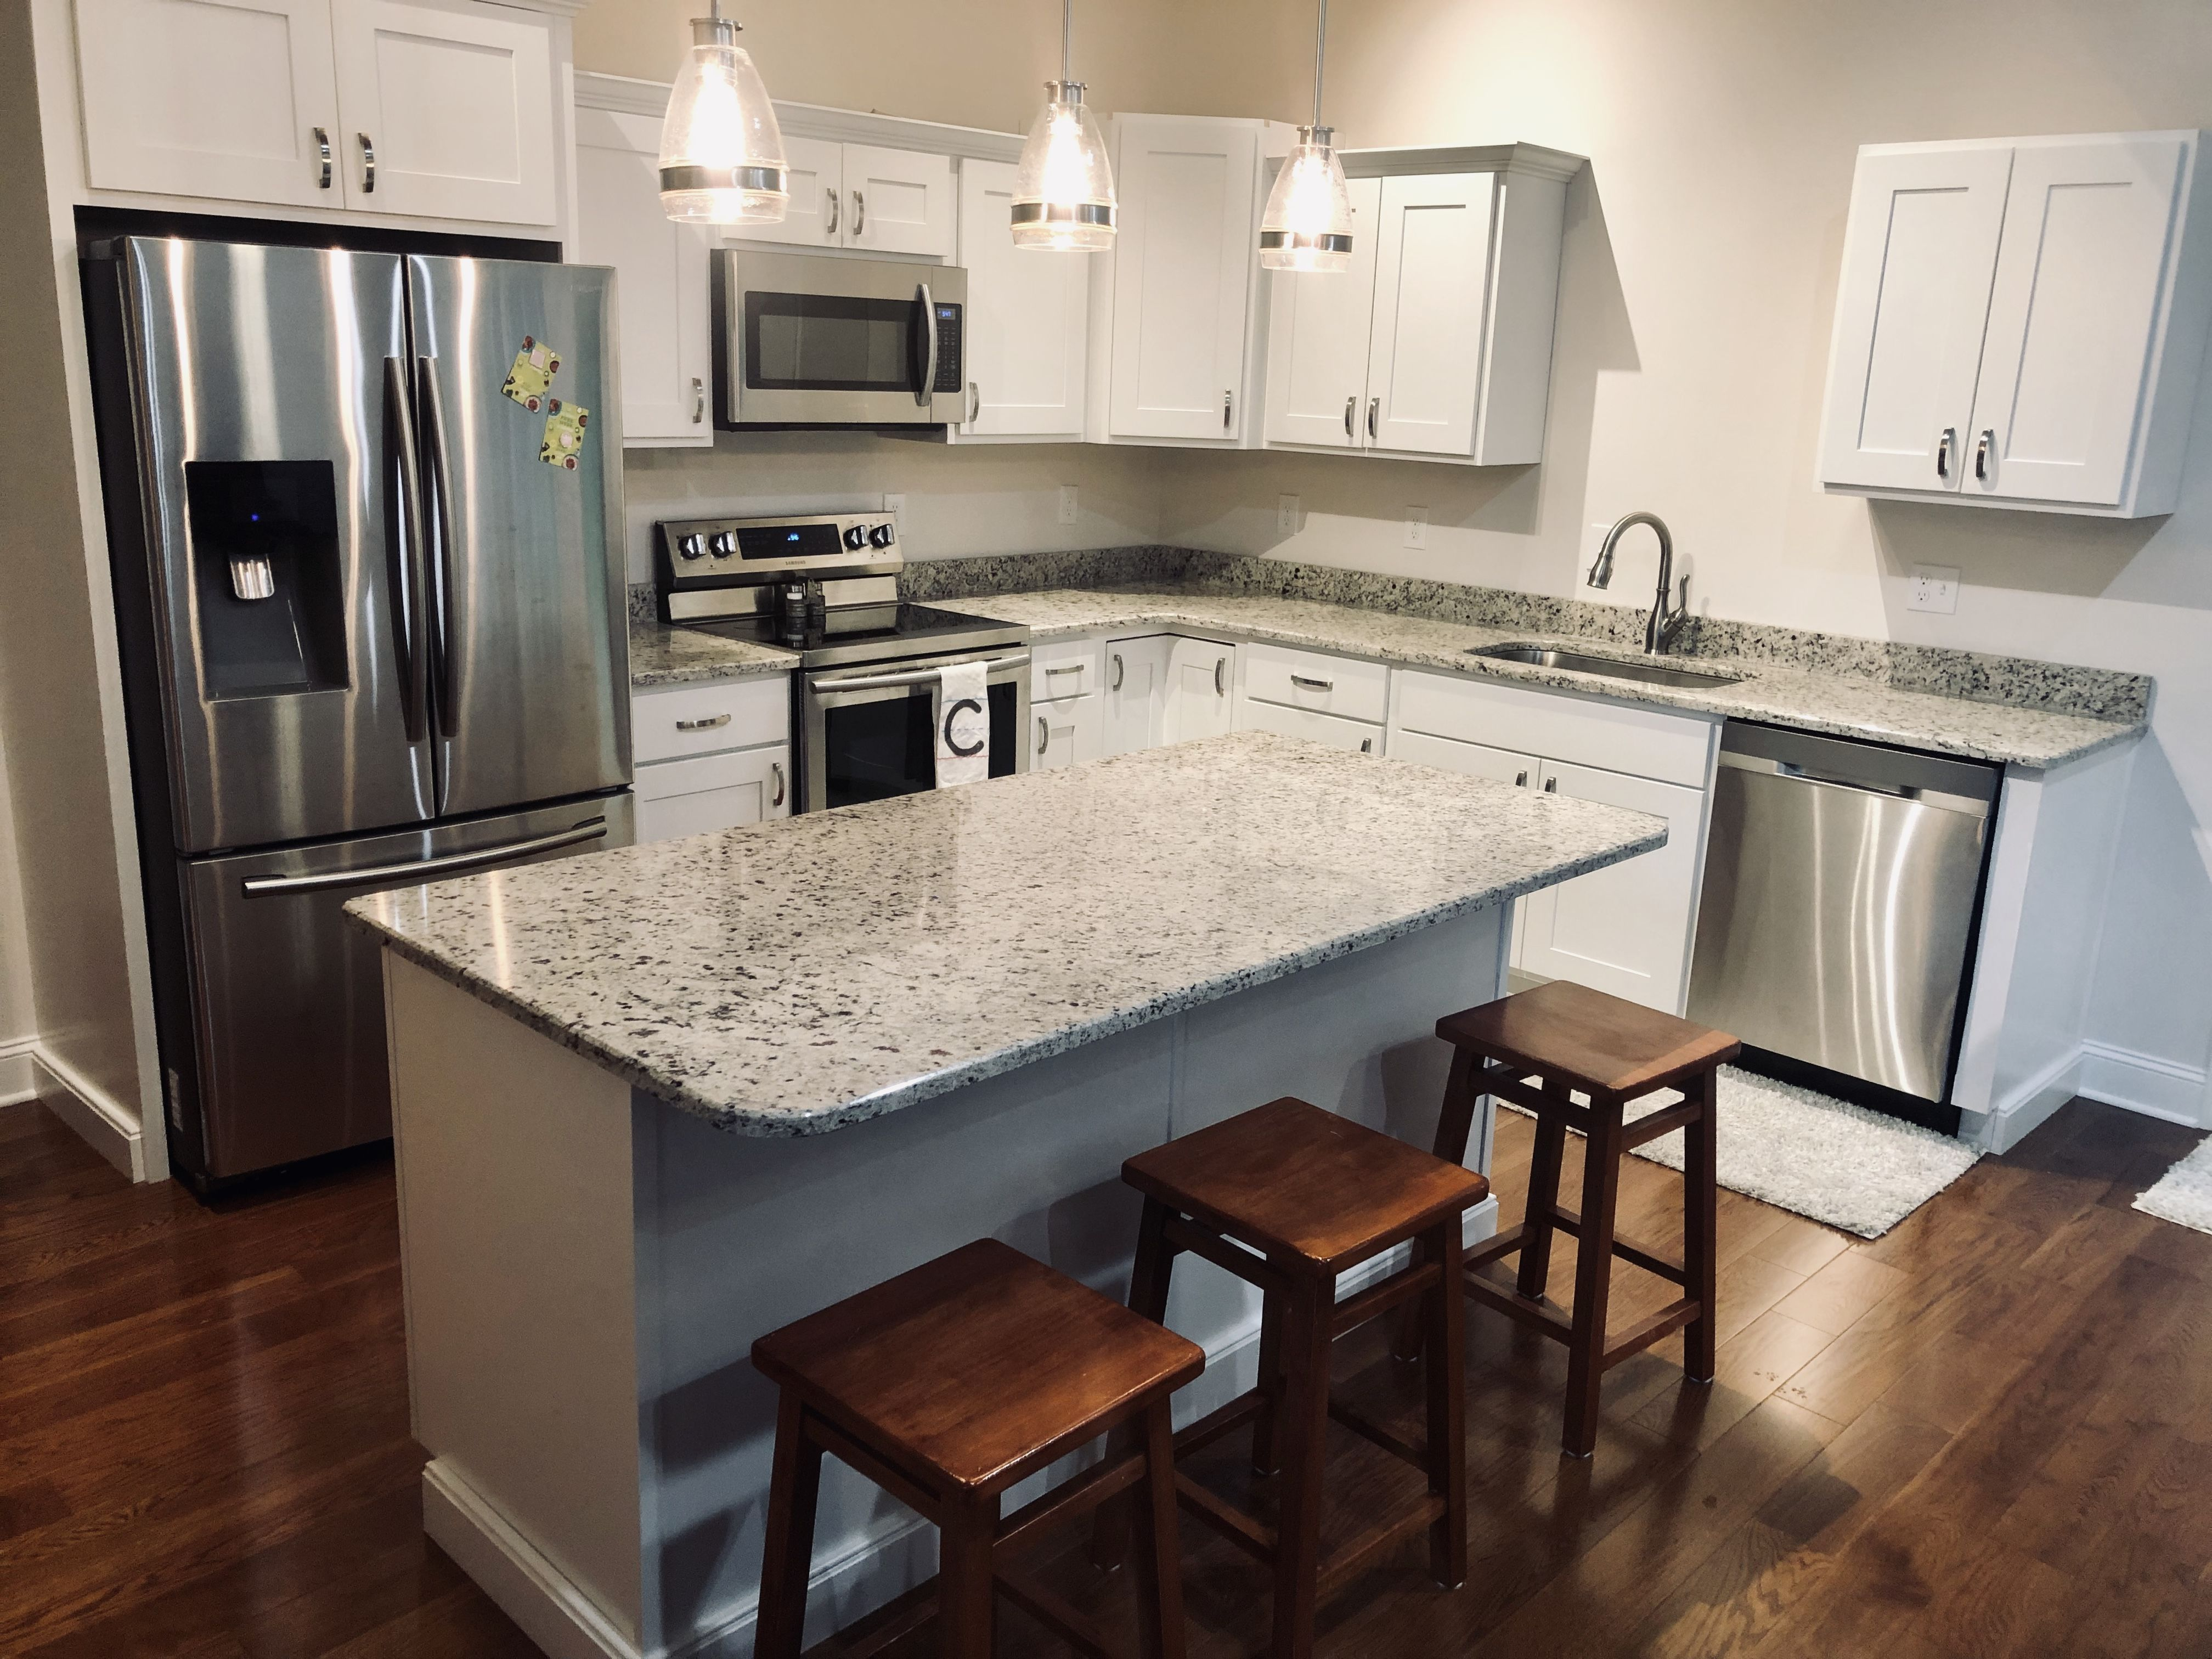 Spring Is Almost Here And It S A Good Time To Finally Replace Your Old Countertops And Upgrade Your Kitchen Her In 2020 Kitchen Design Custom Countertops Countertops